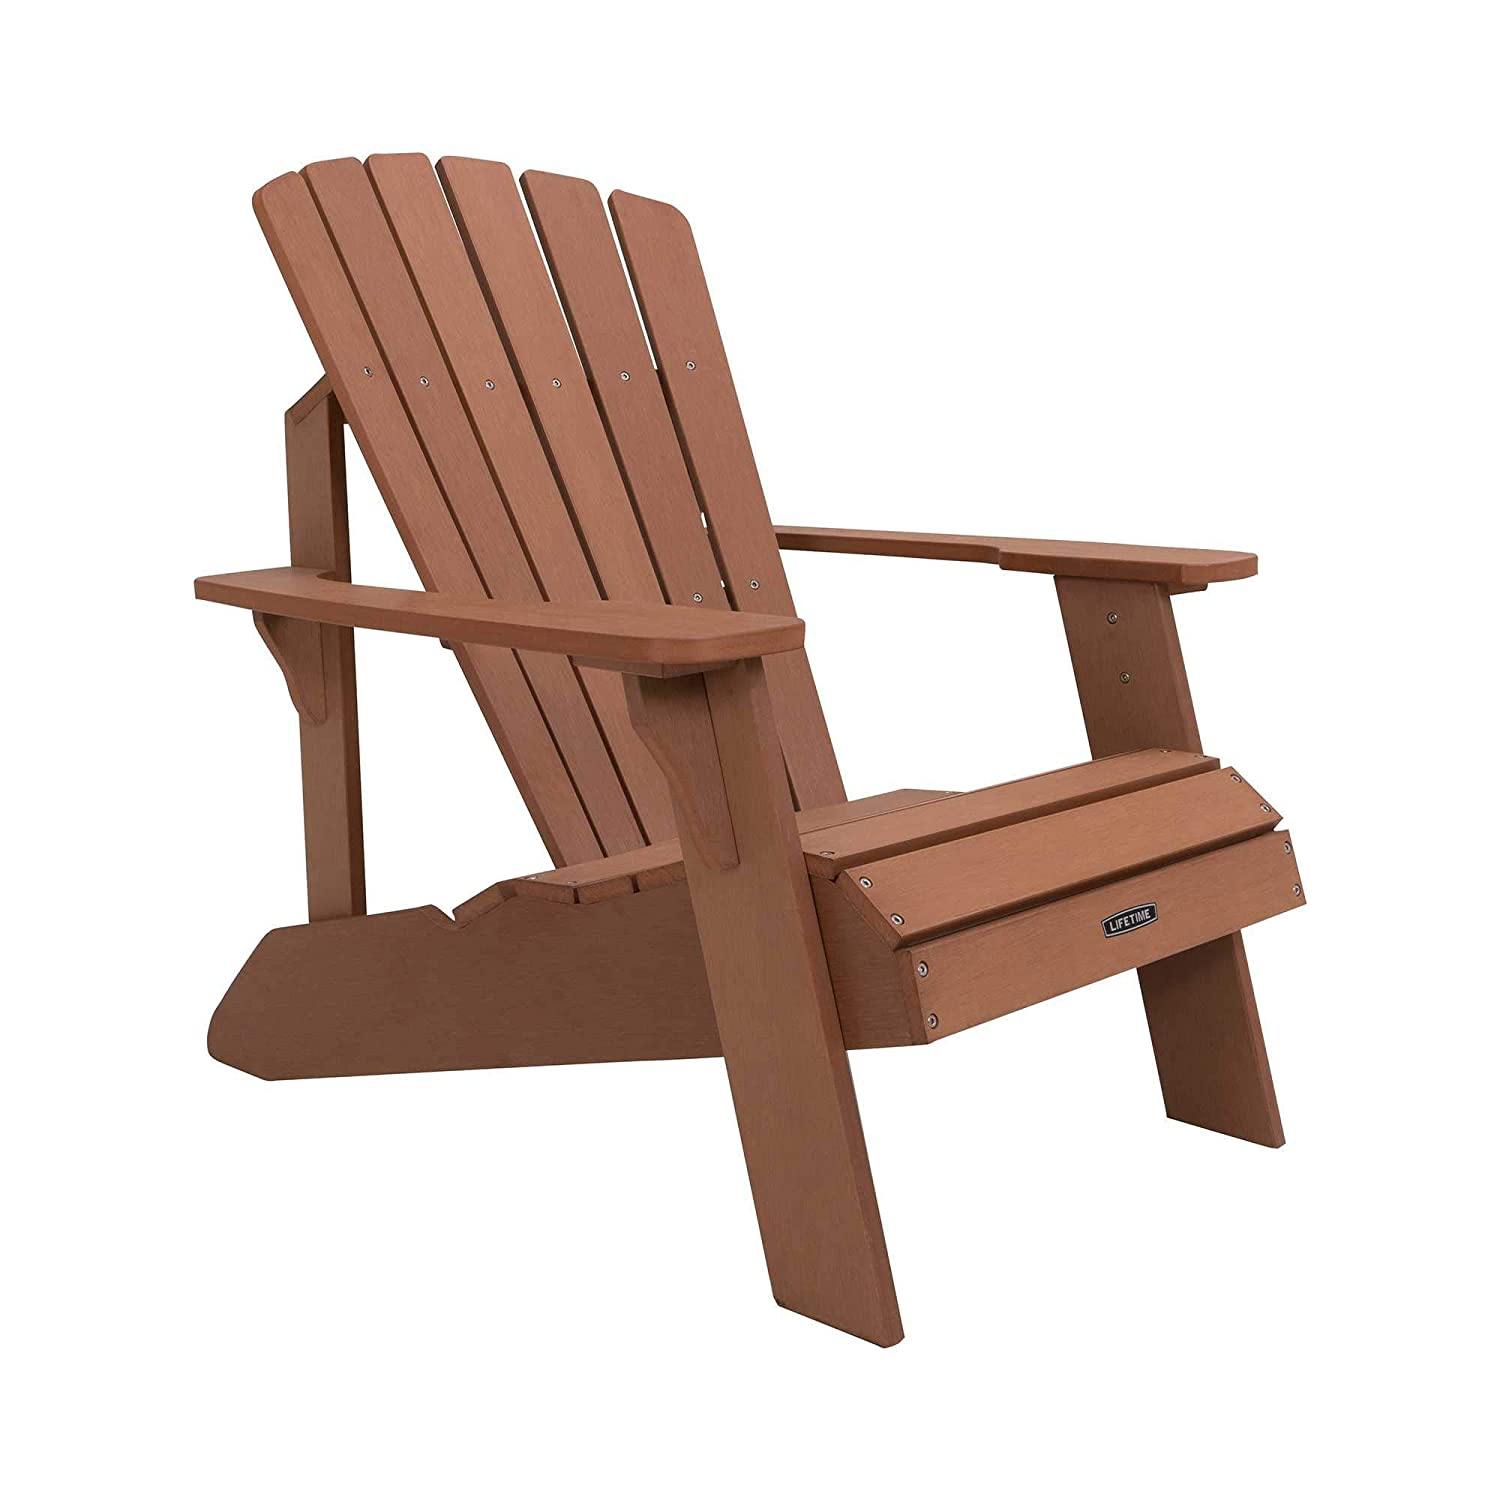 Top 10 Best Composite Adirondack Chairs